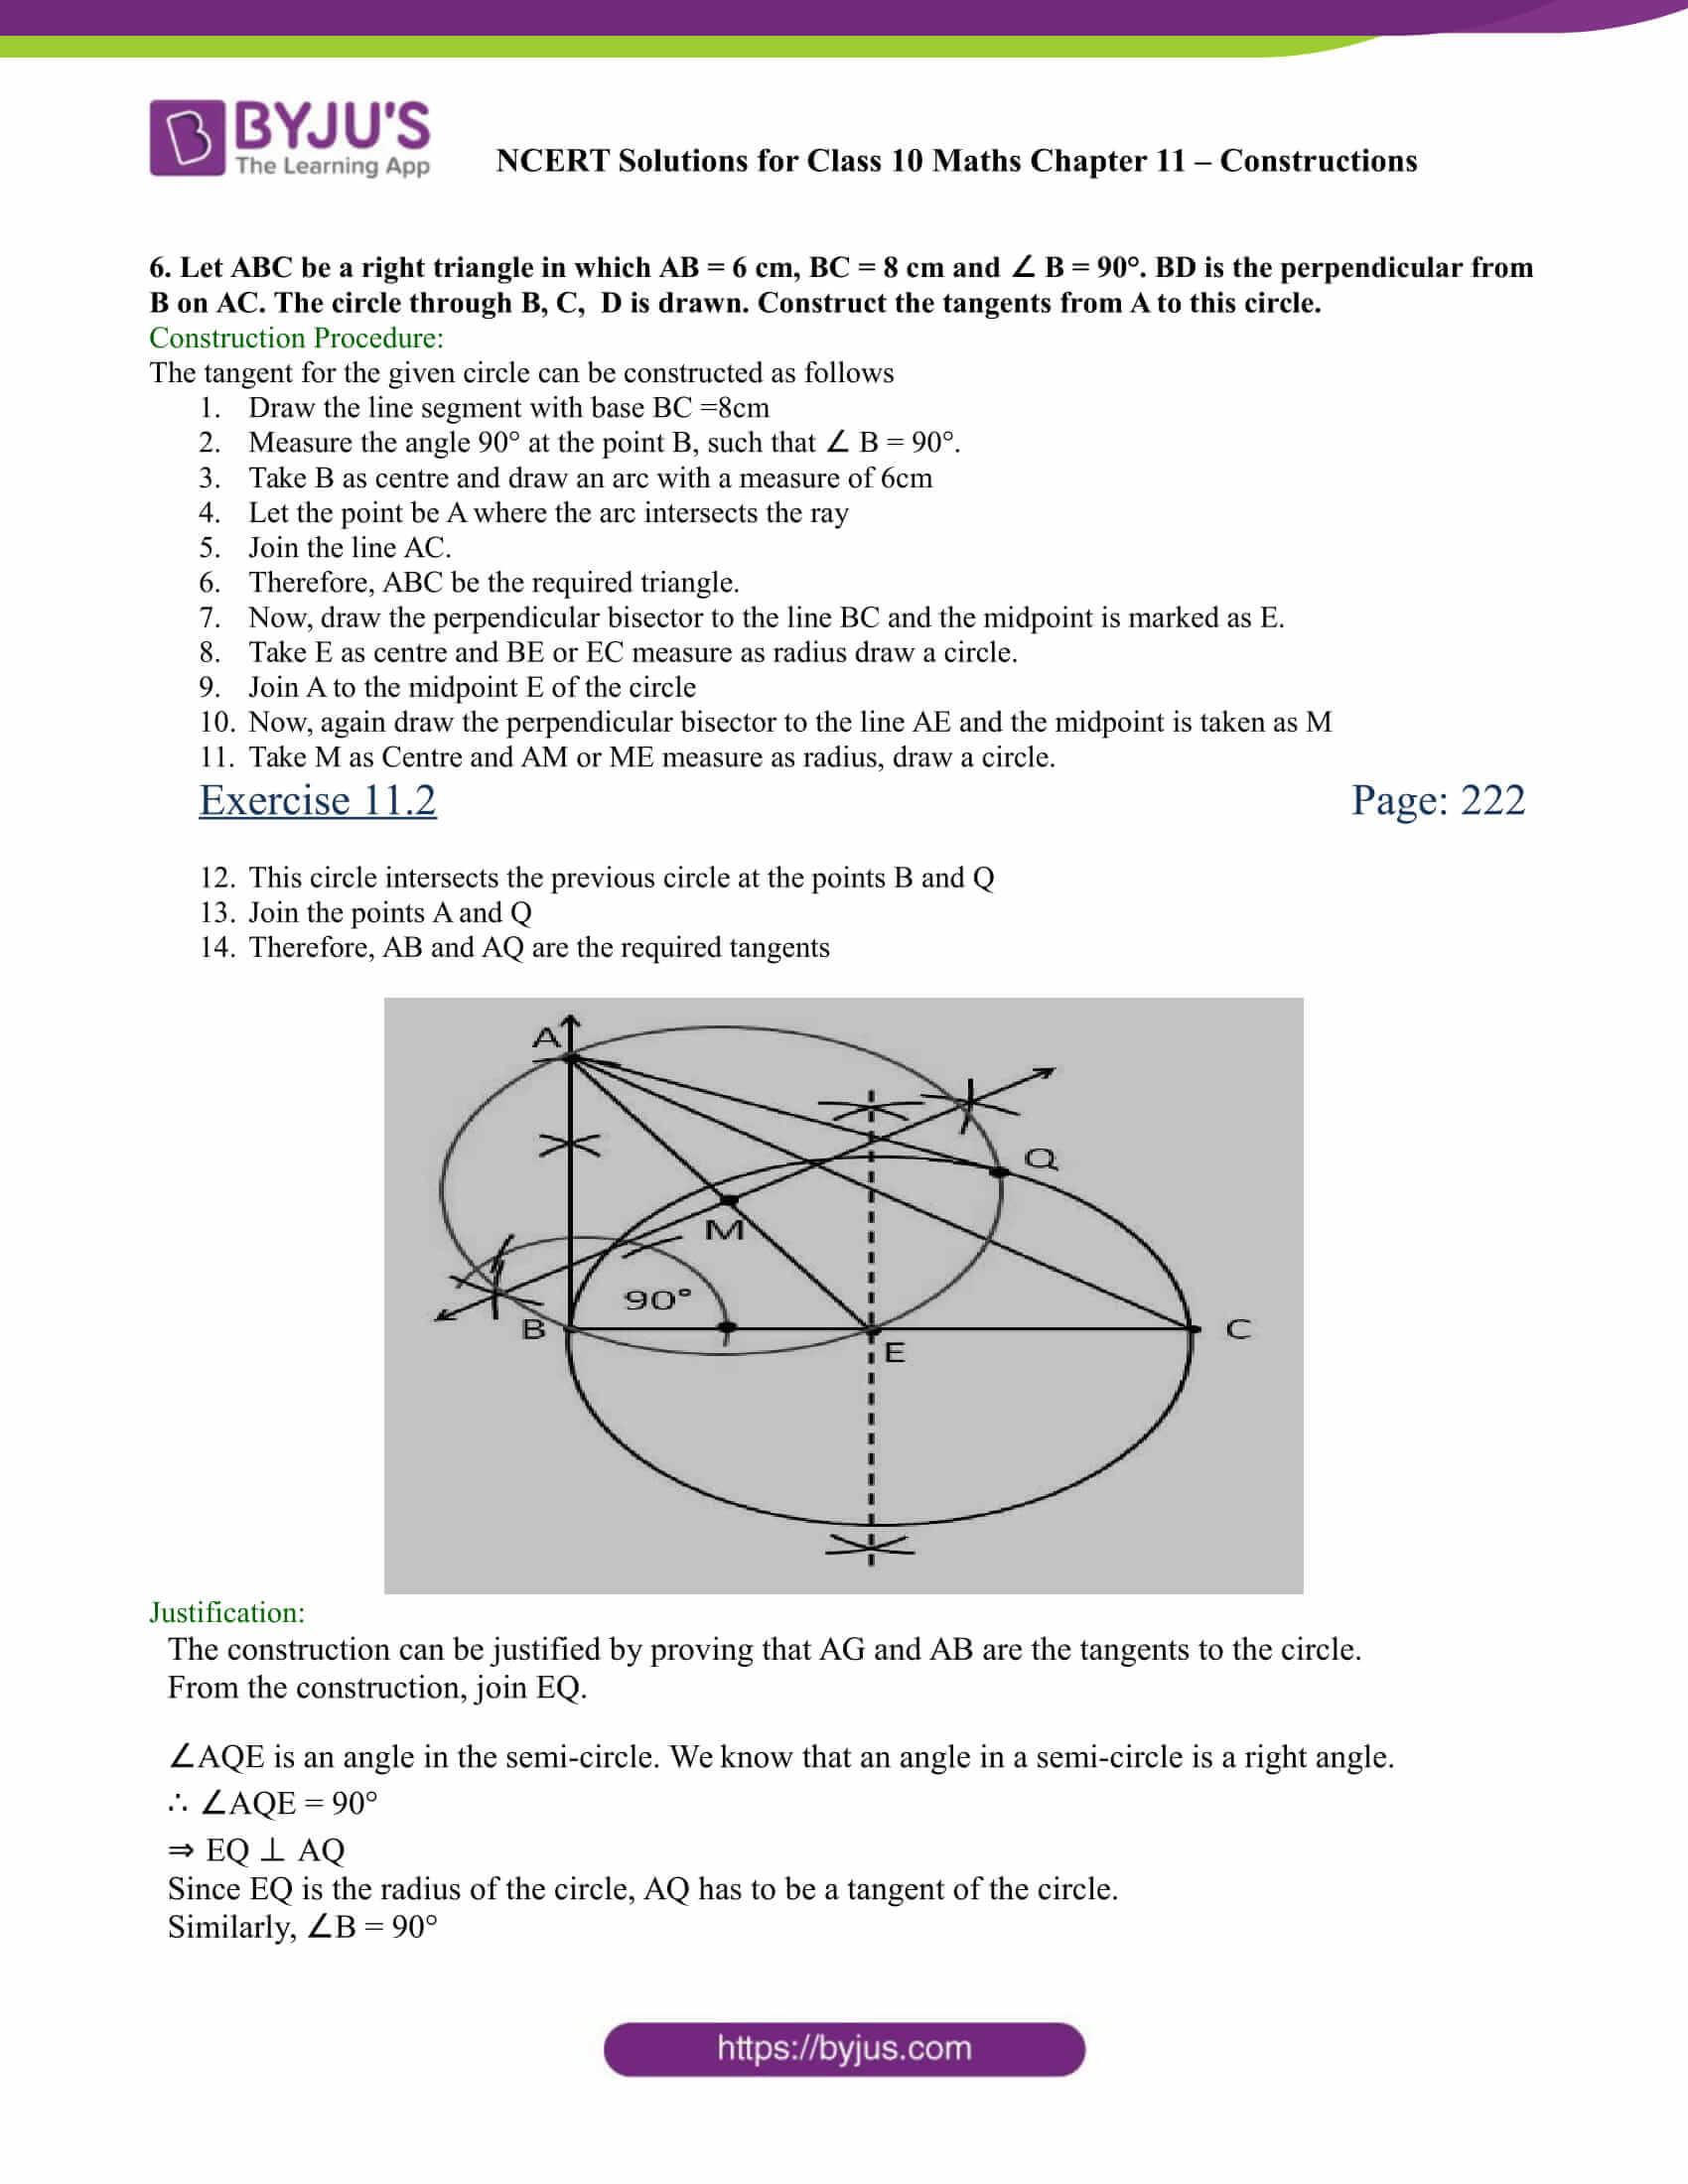 NCERT Solutions for class 10 chapter 11 Constructions Part 15